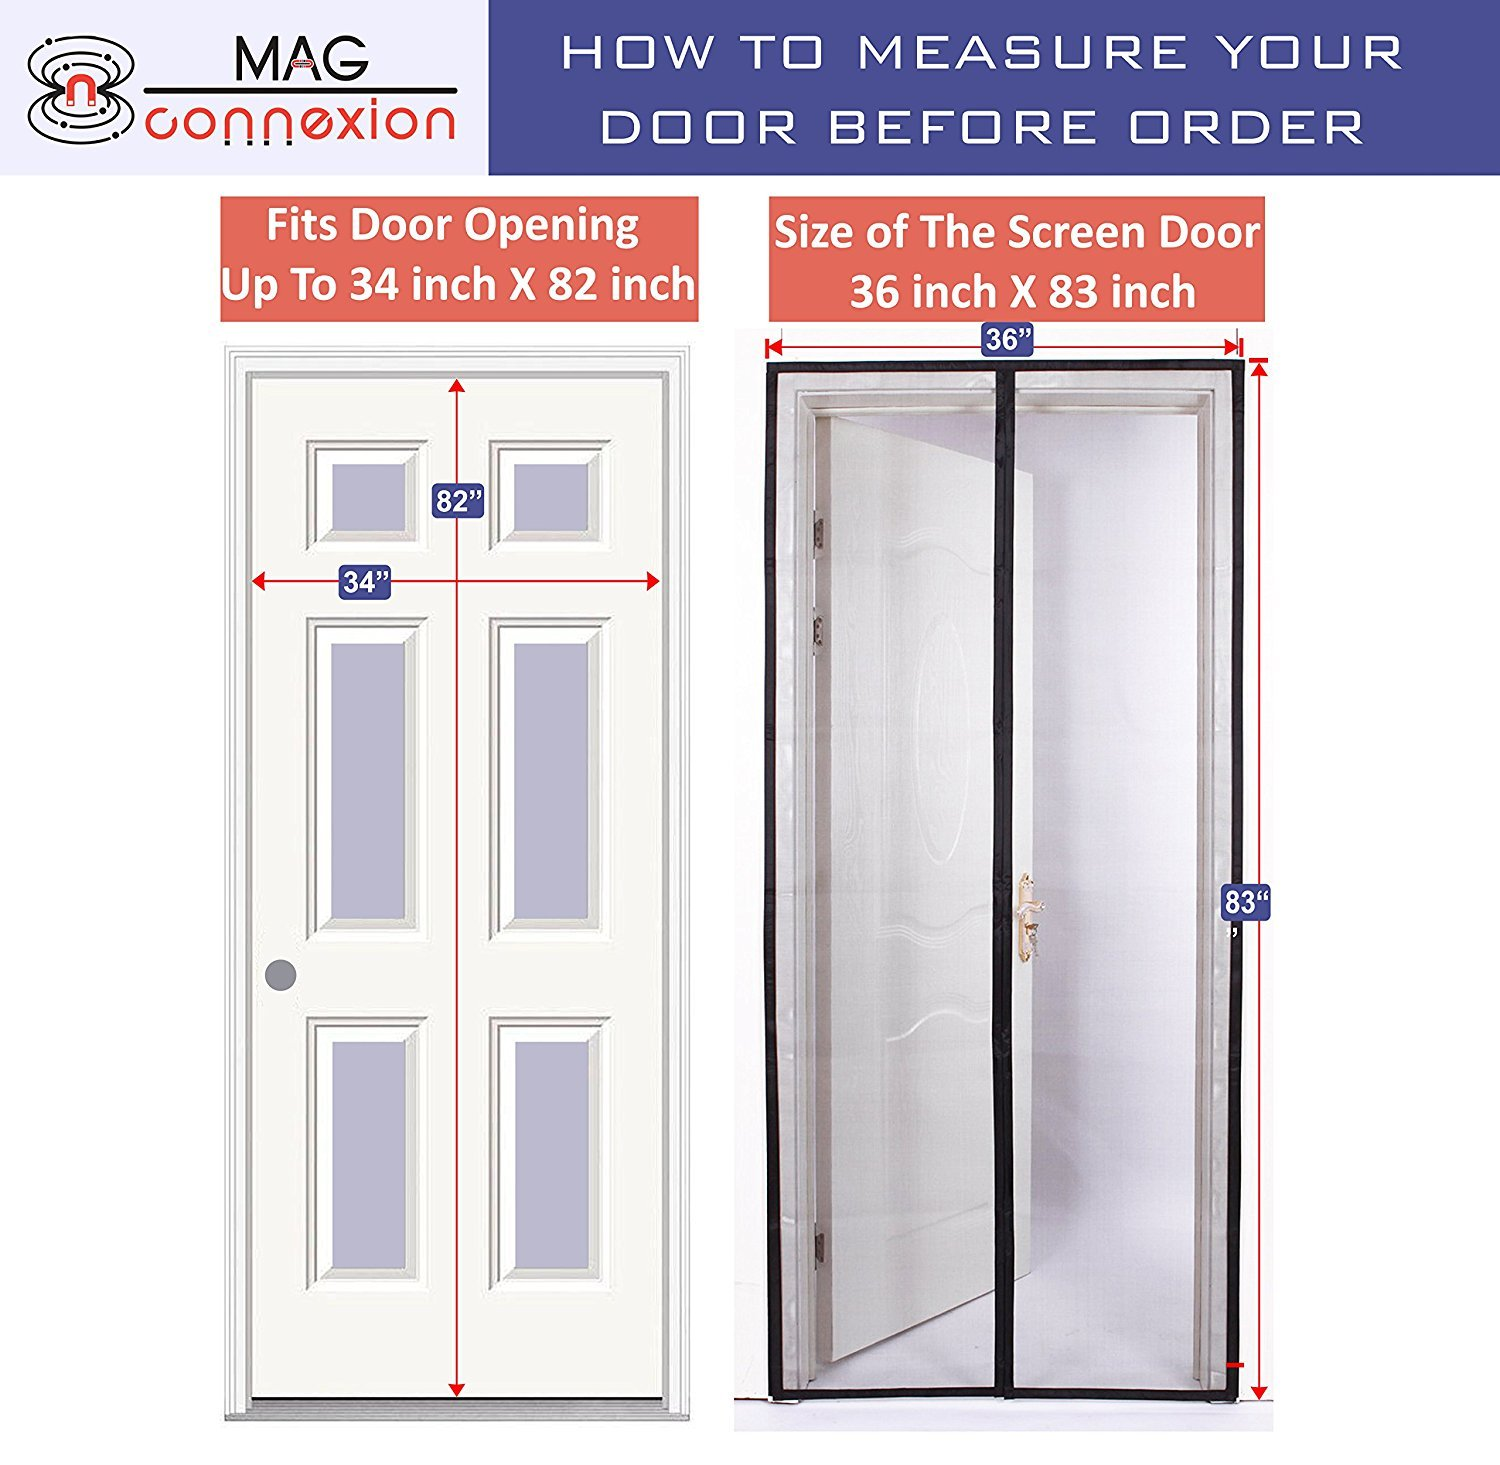 Grey Magnetic Screen Door With Upgraded Fire Resistant Fiberglass Mesh |  Fit Doors Up To 34 X 82 Inch | 100% Satisfaction U0026 Guranteed     Amazon.com